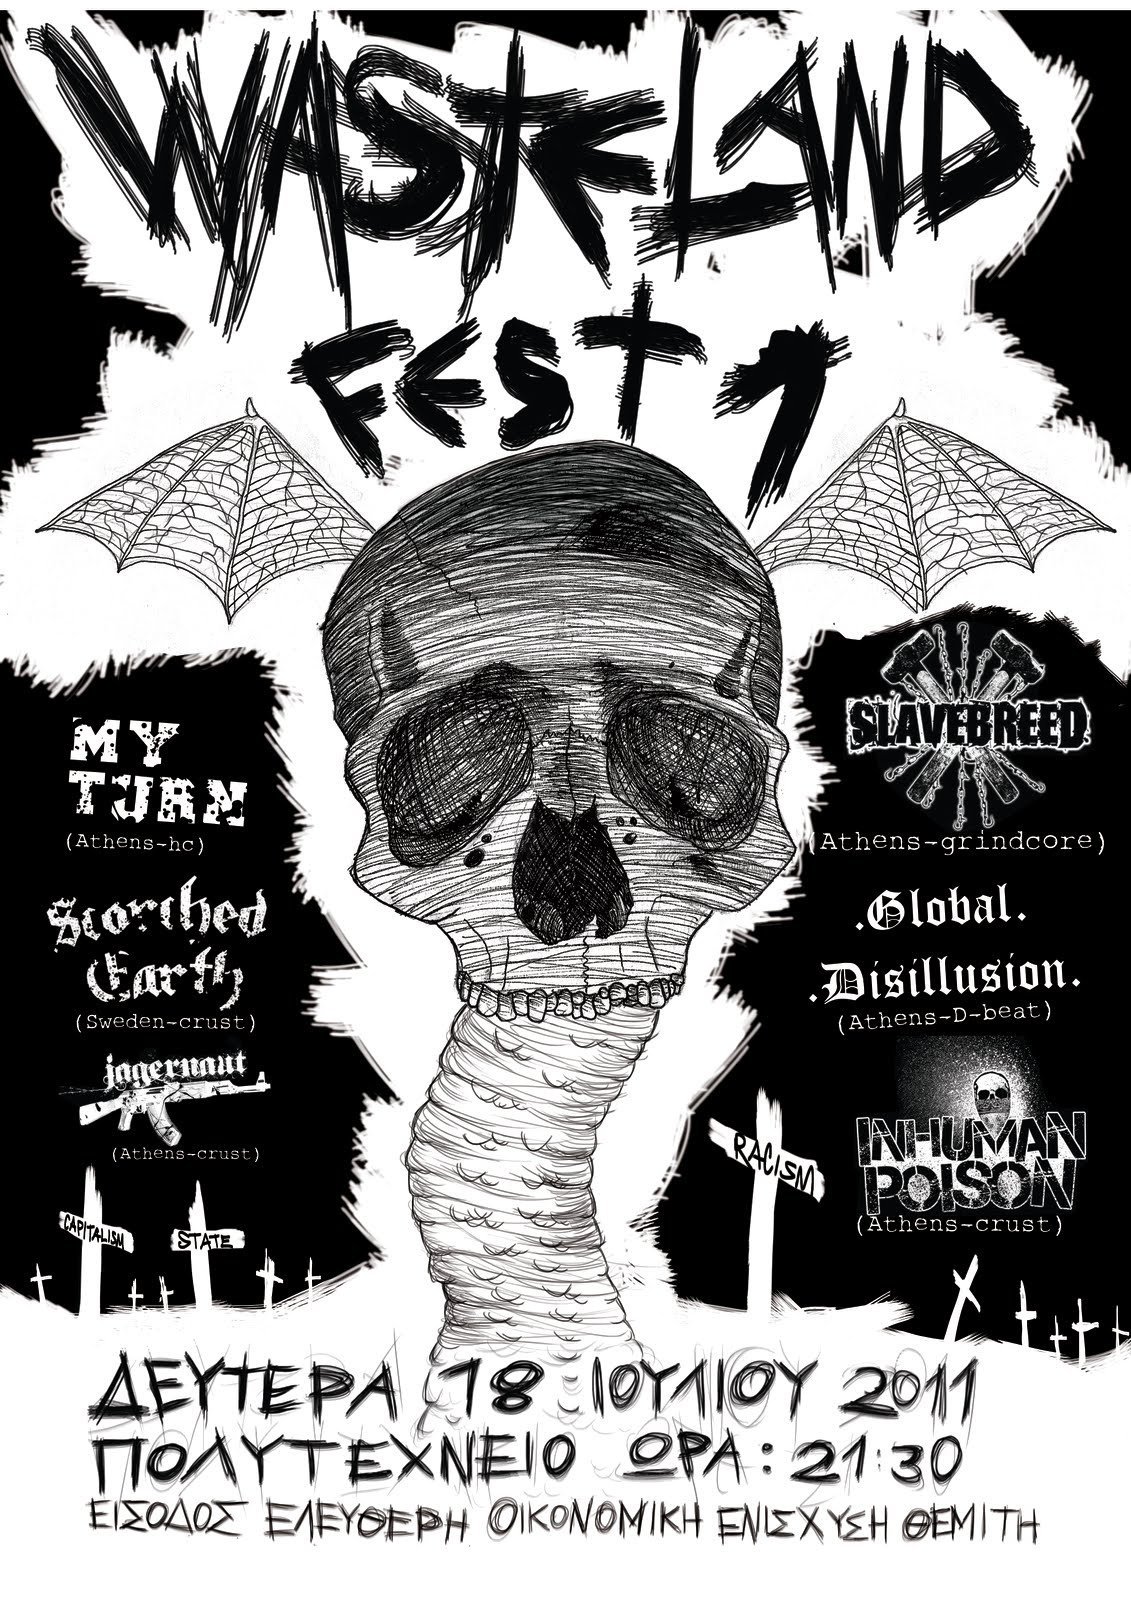 Poster design how much to charge - Our Good Friend From Jerboa Illustrations Decided To Make A Much Better Poster For The Fest